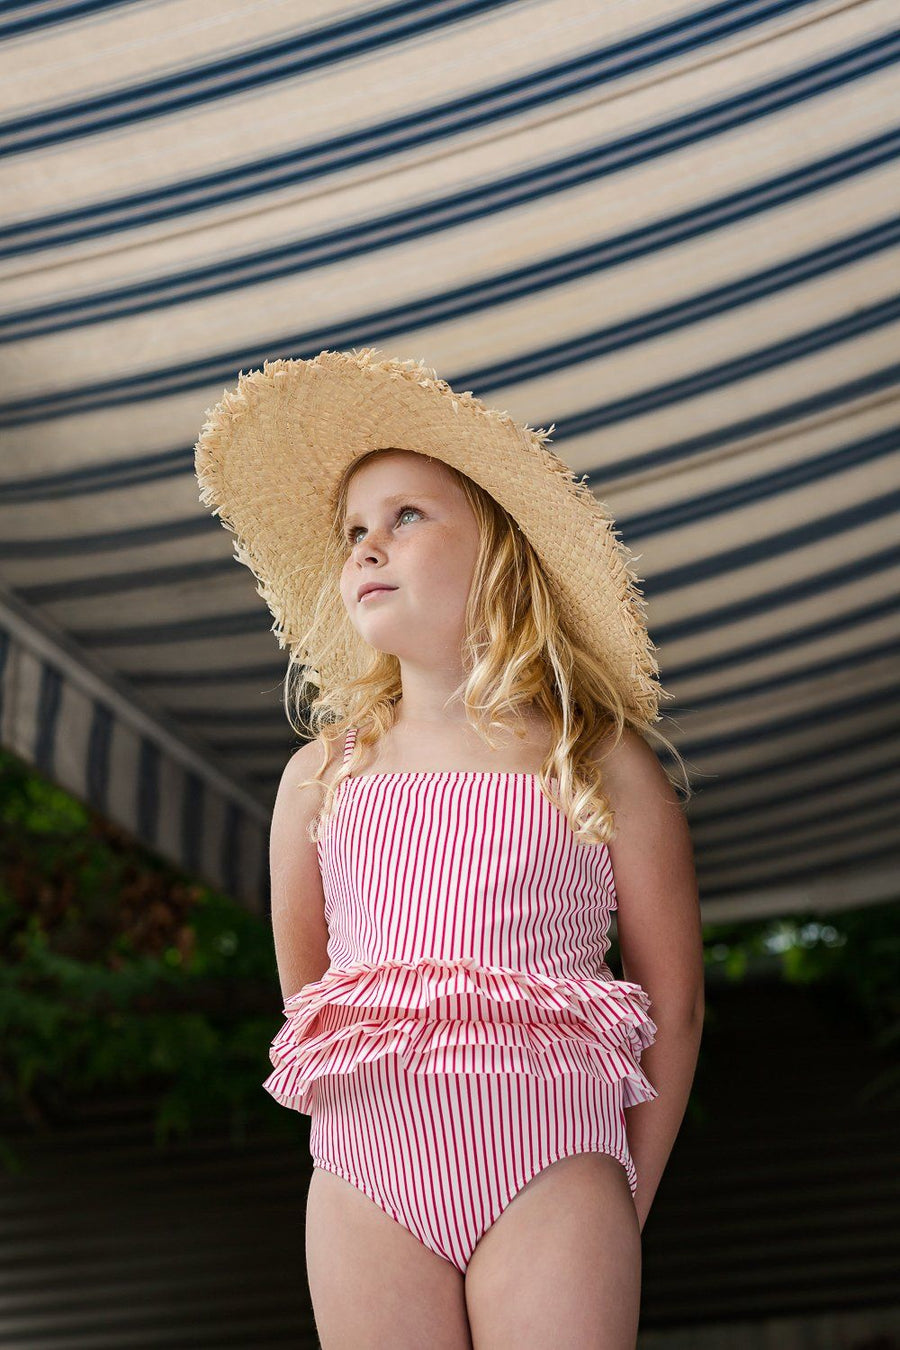 Ziggy Wide Brim Straw hat at Tiny People shop